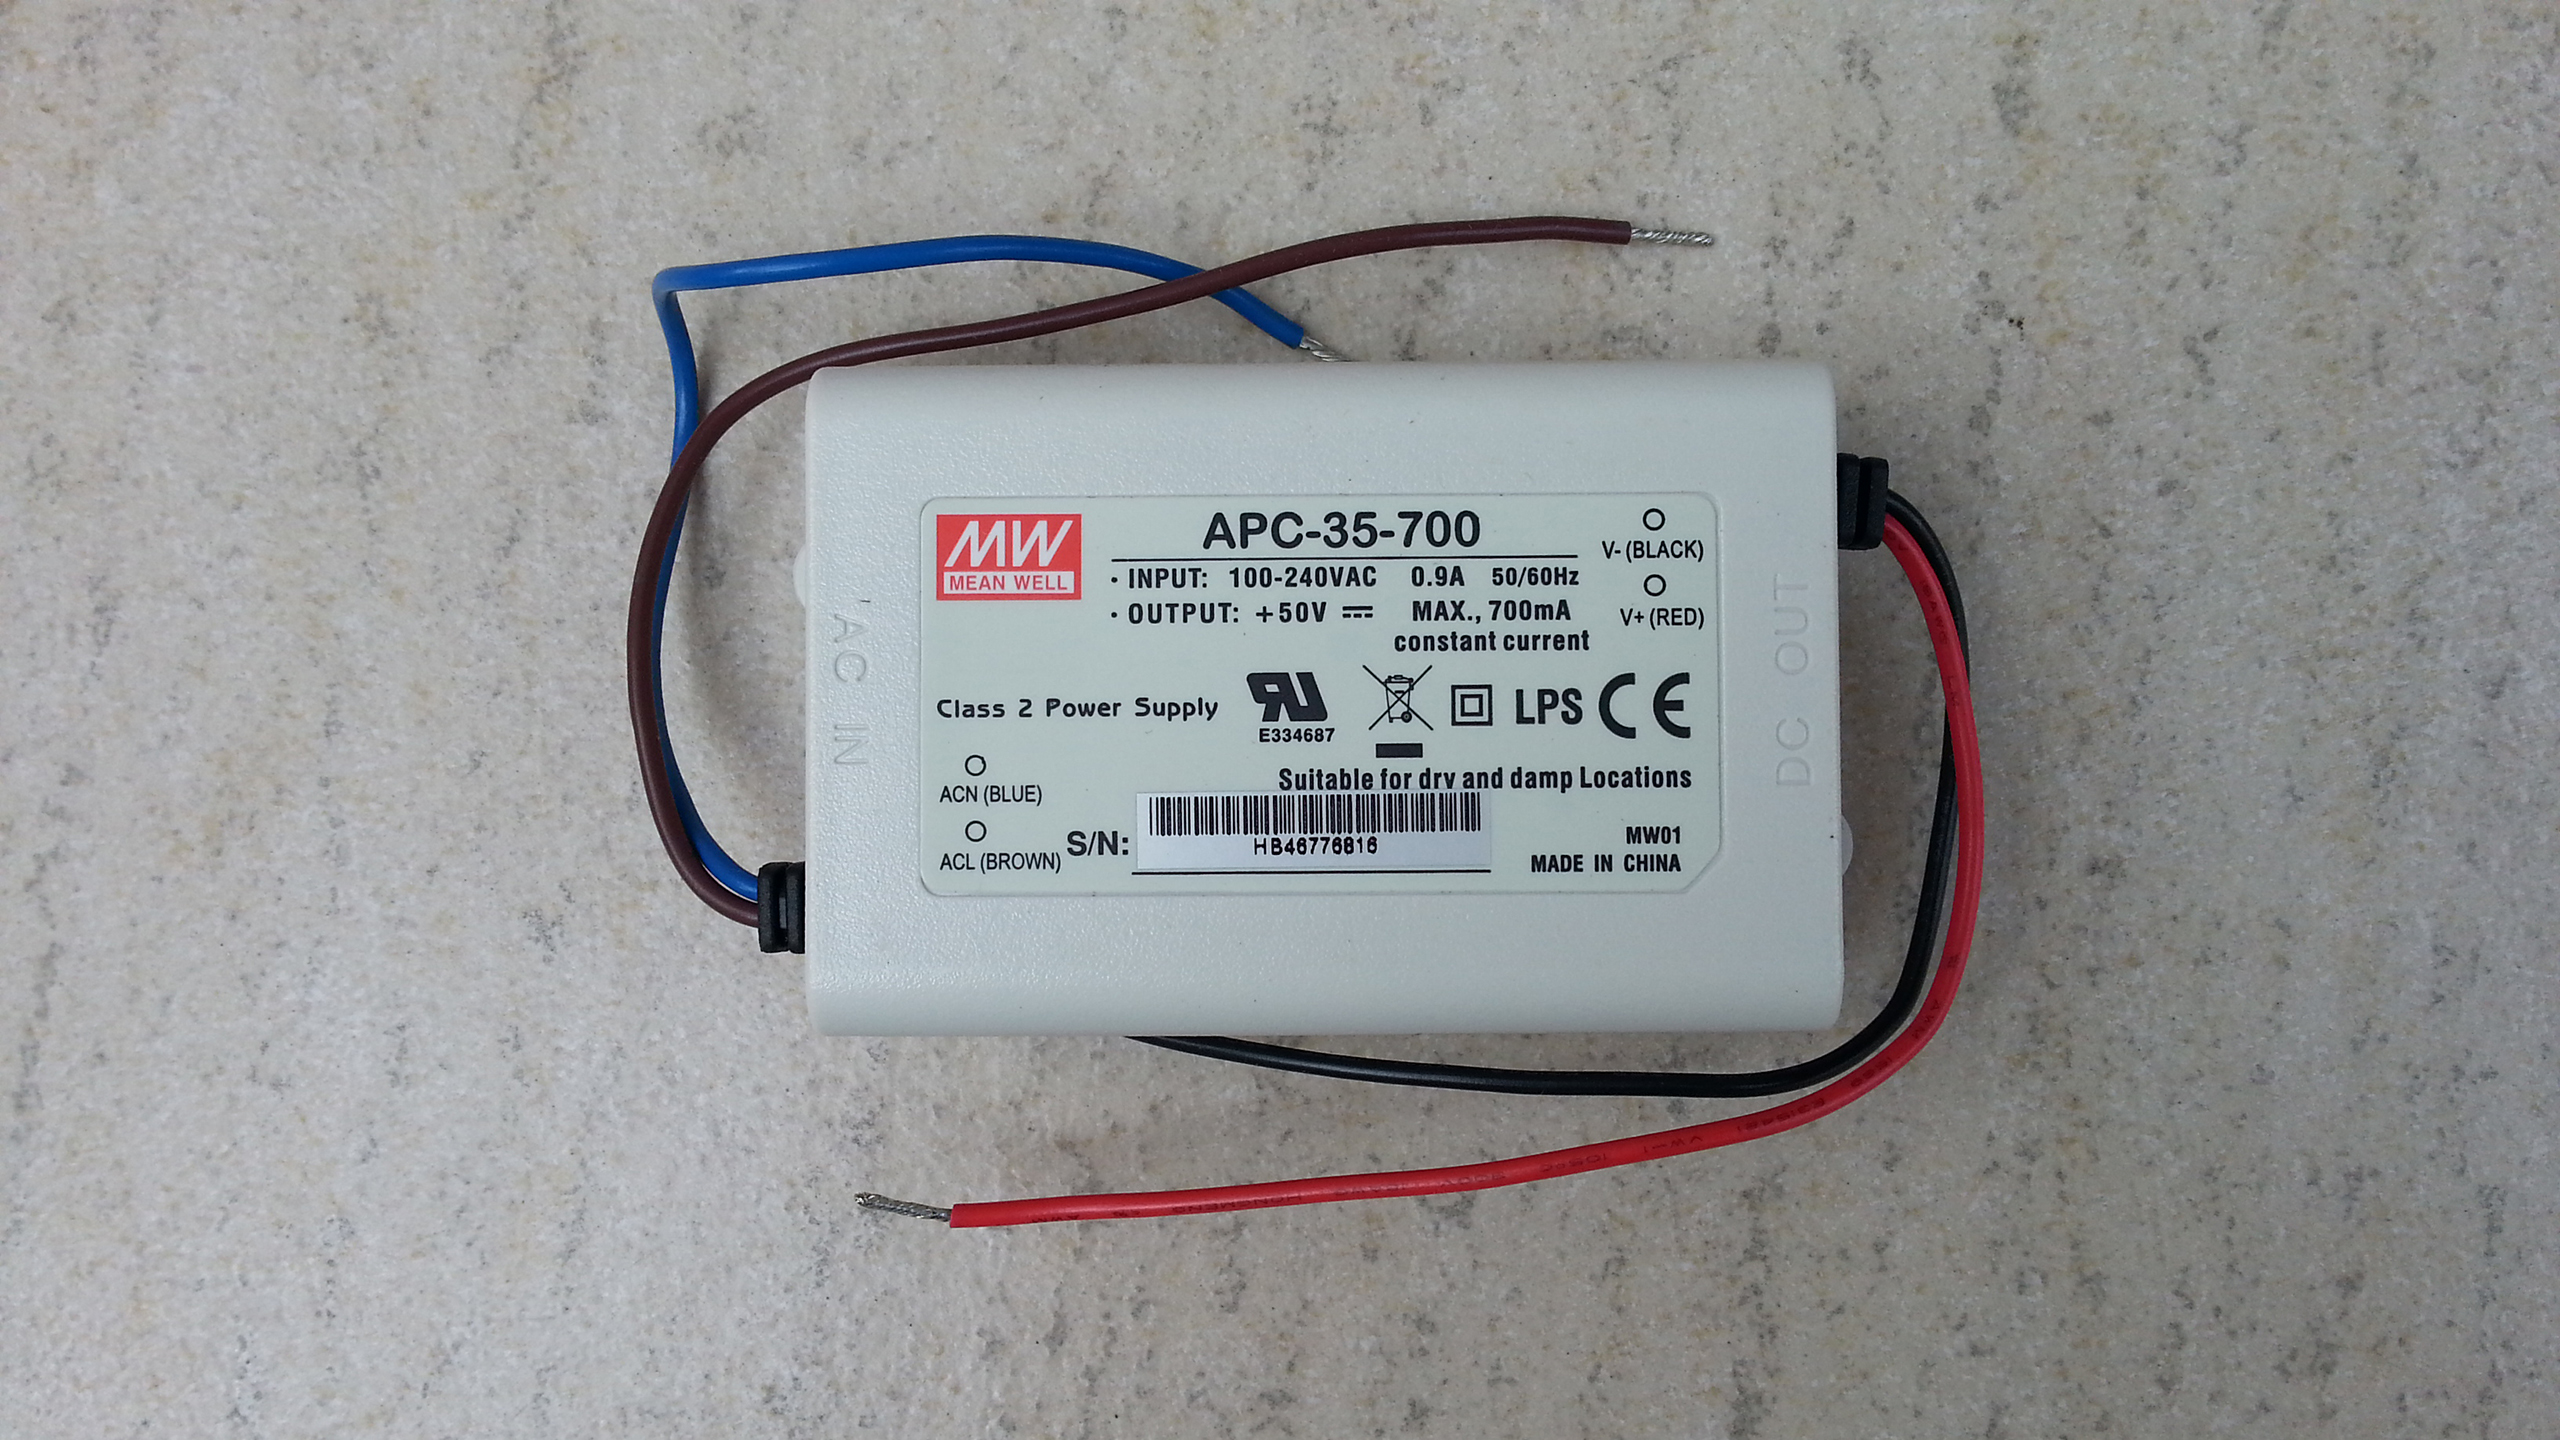 Meanwell_APC_35_700_constant_current_LED_driver_power_supply